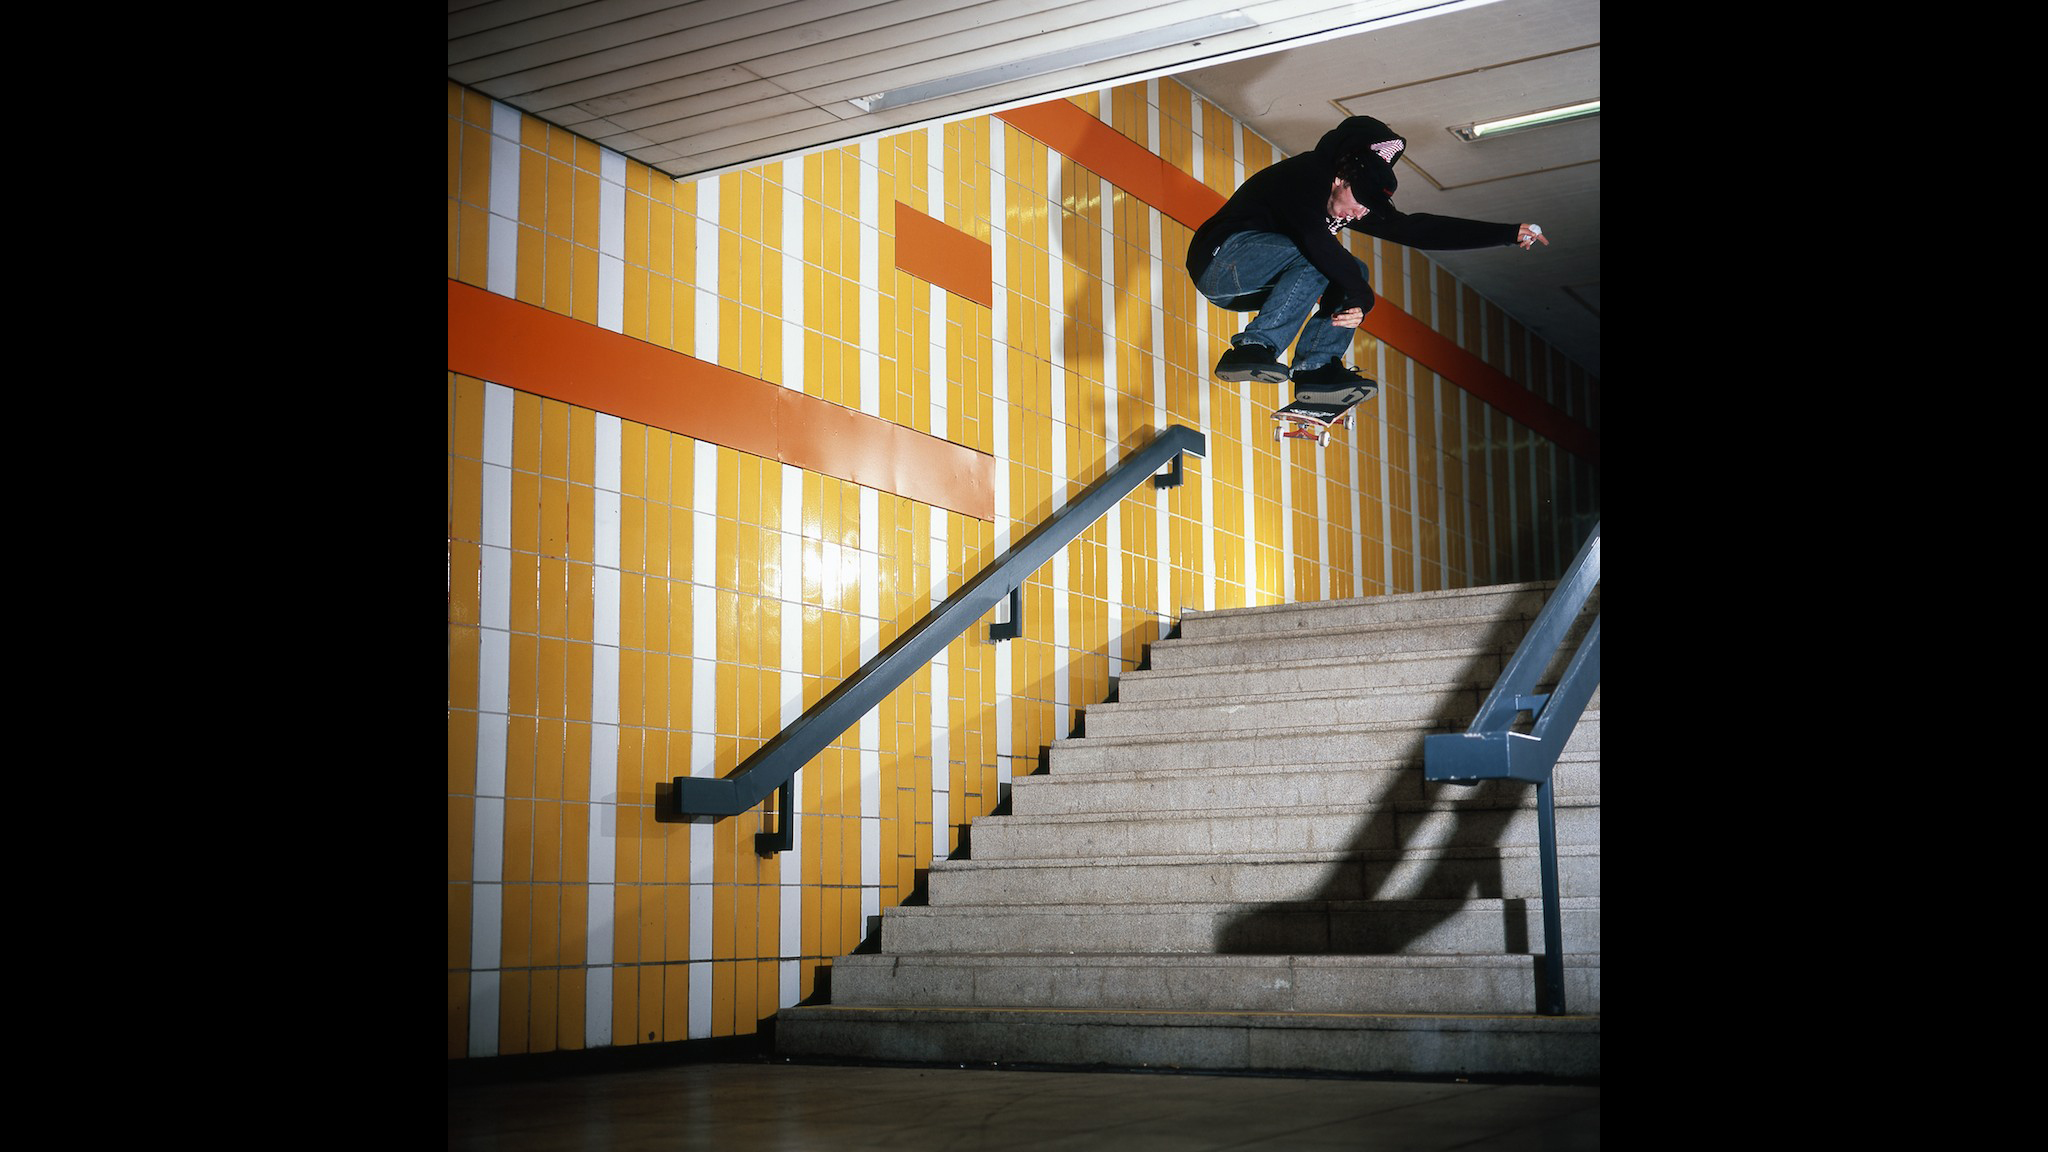 Kilian Heuberger, switch kickflip